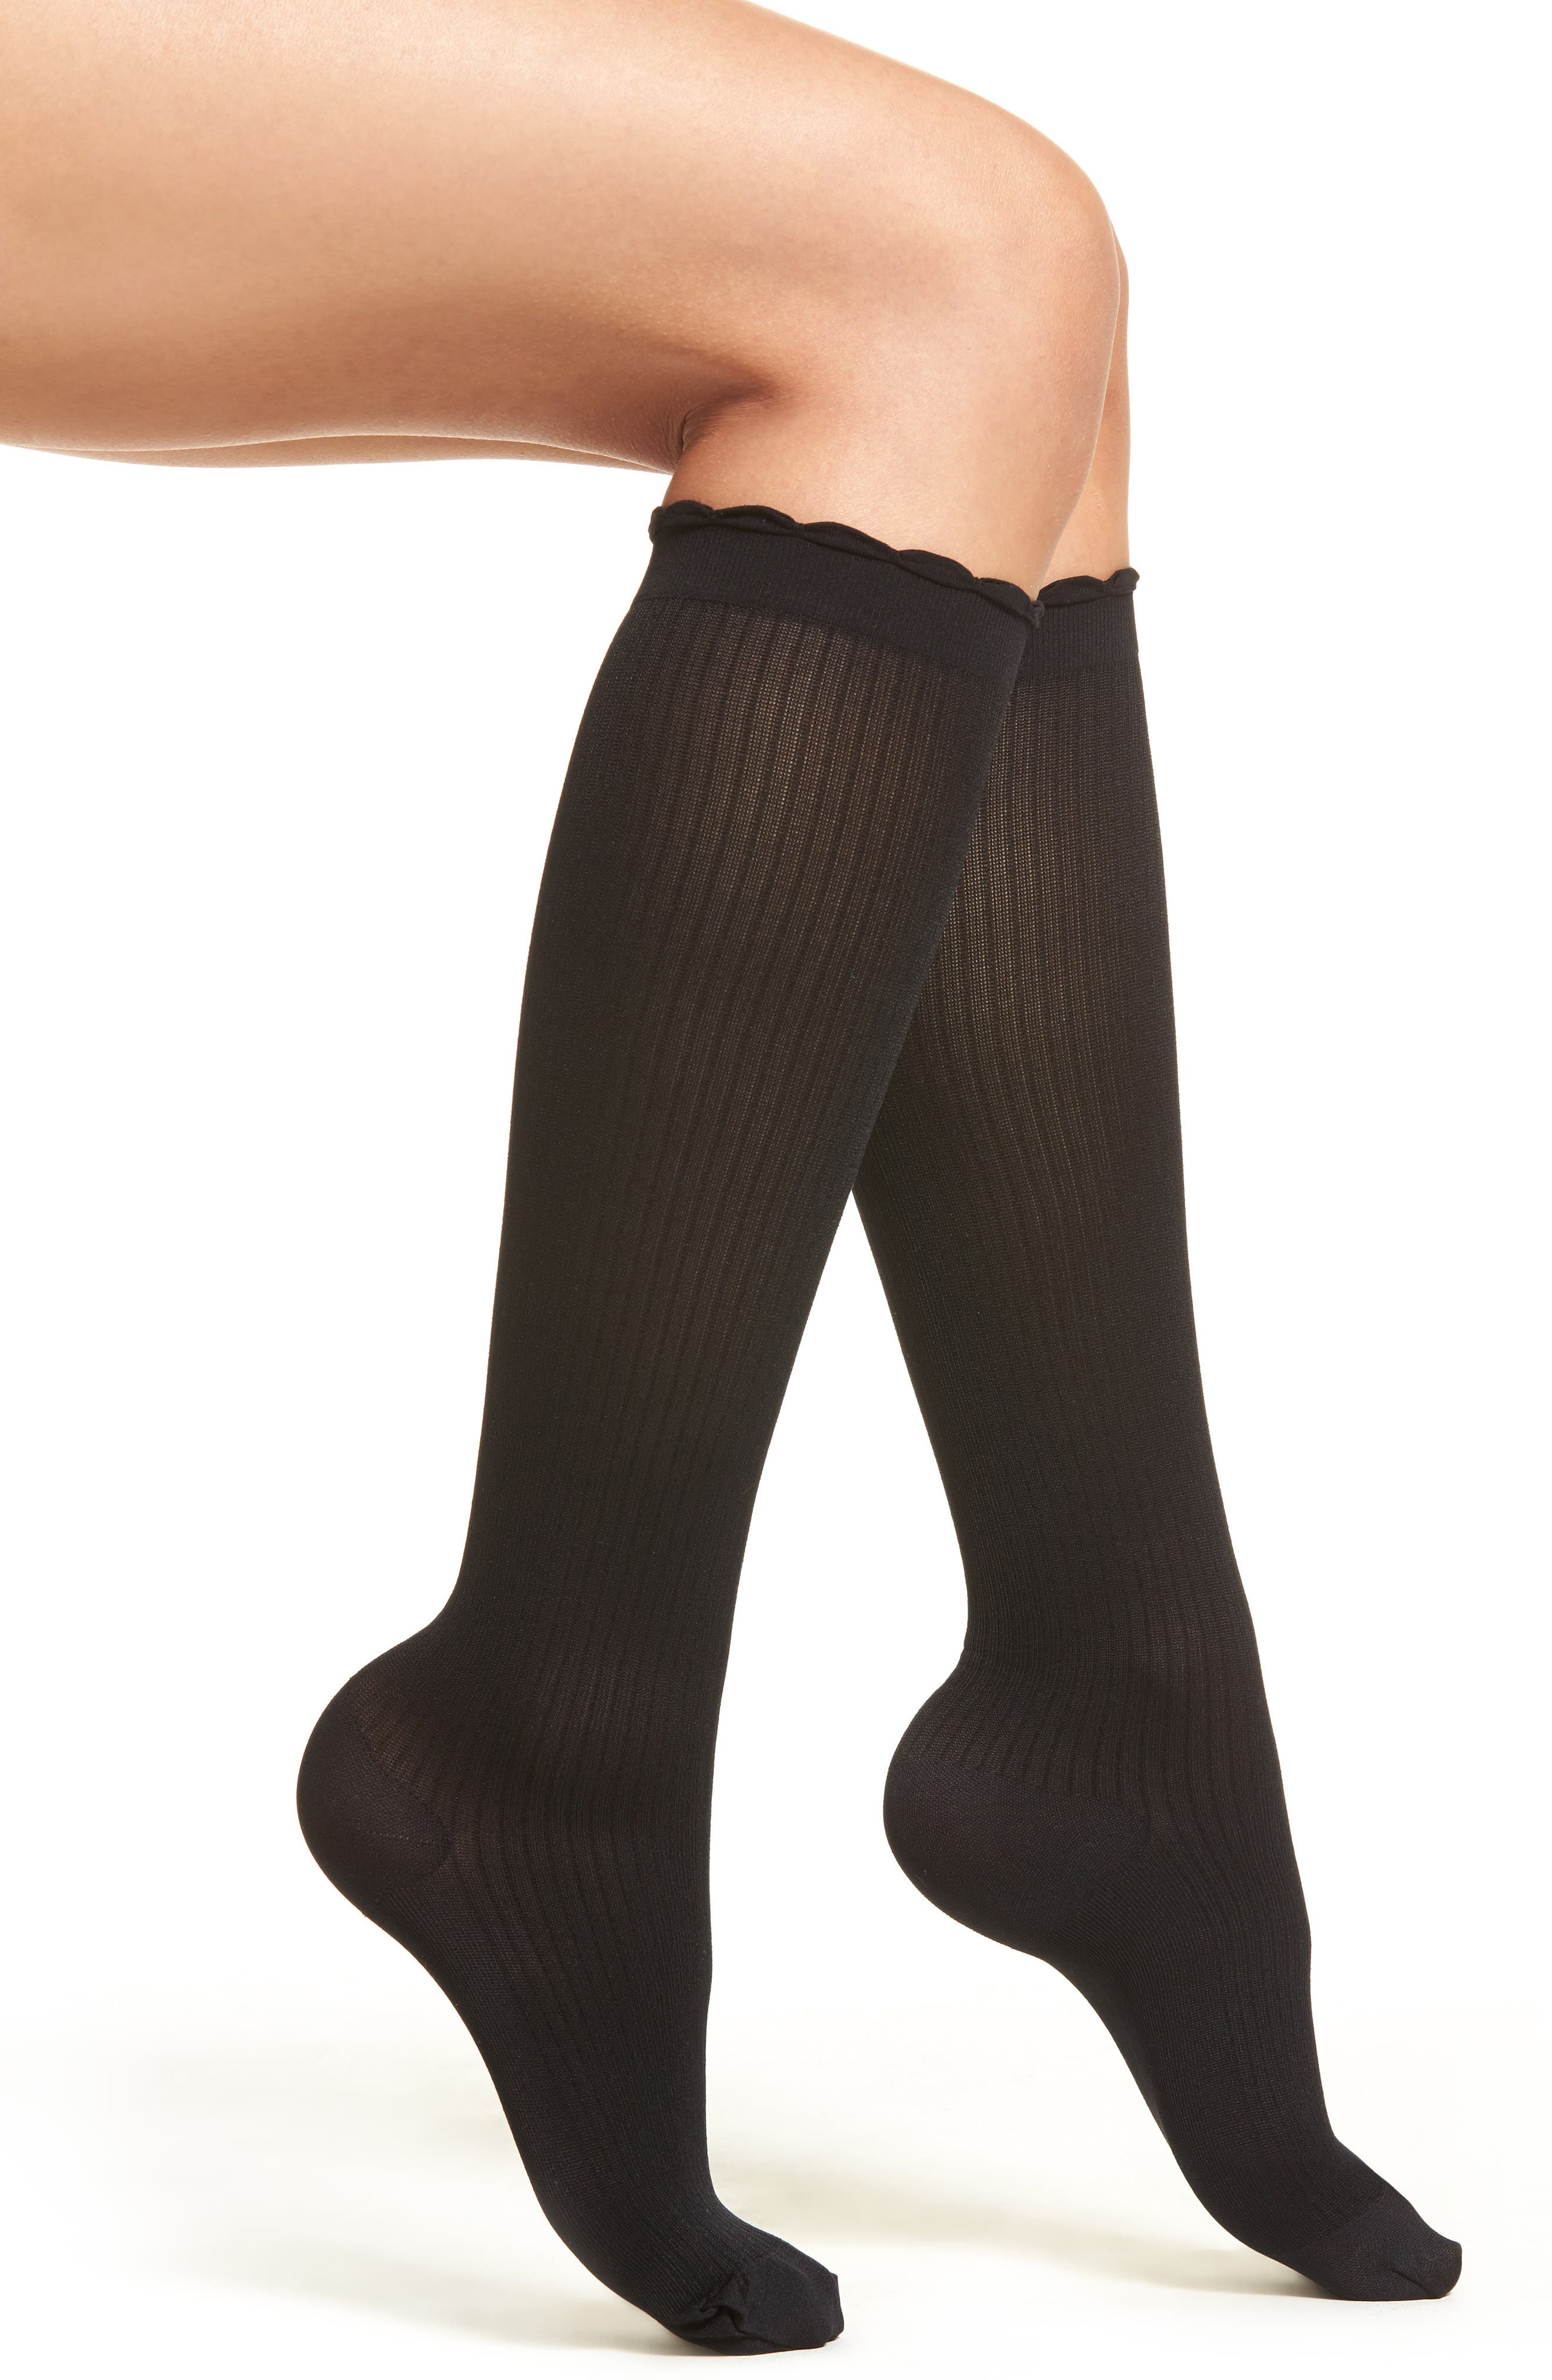 Ribbed Compression Trouser Socks,                             Main thumbnail 1, color,                             BLACK